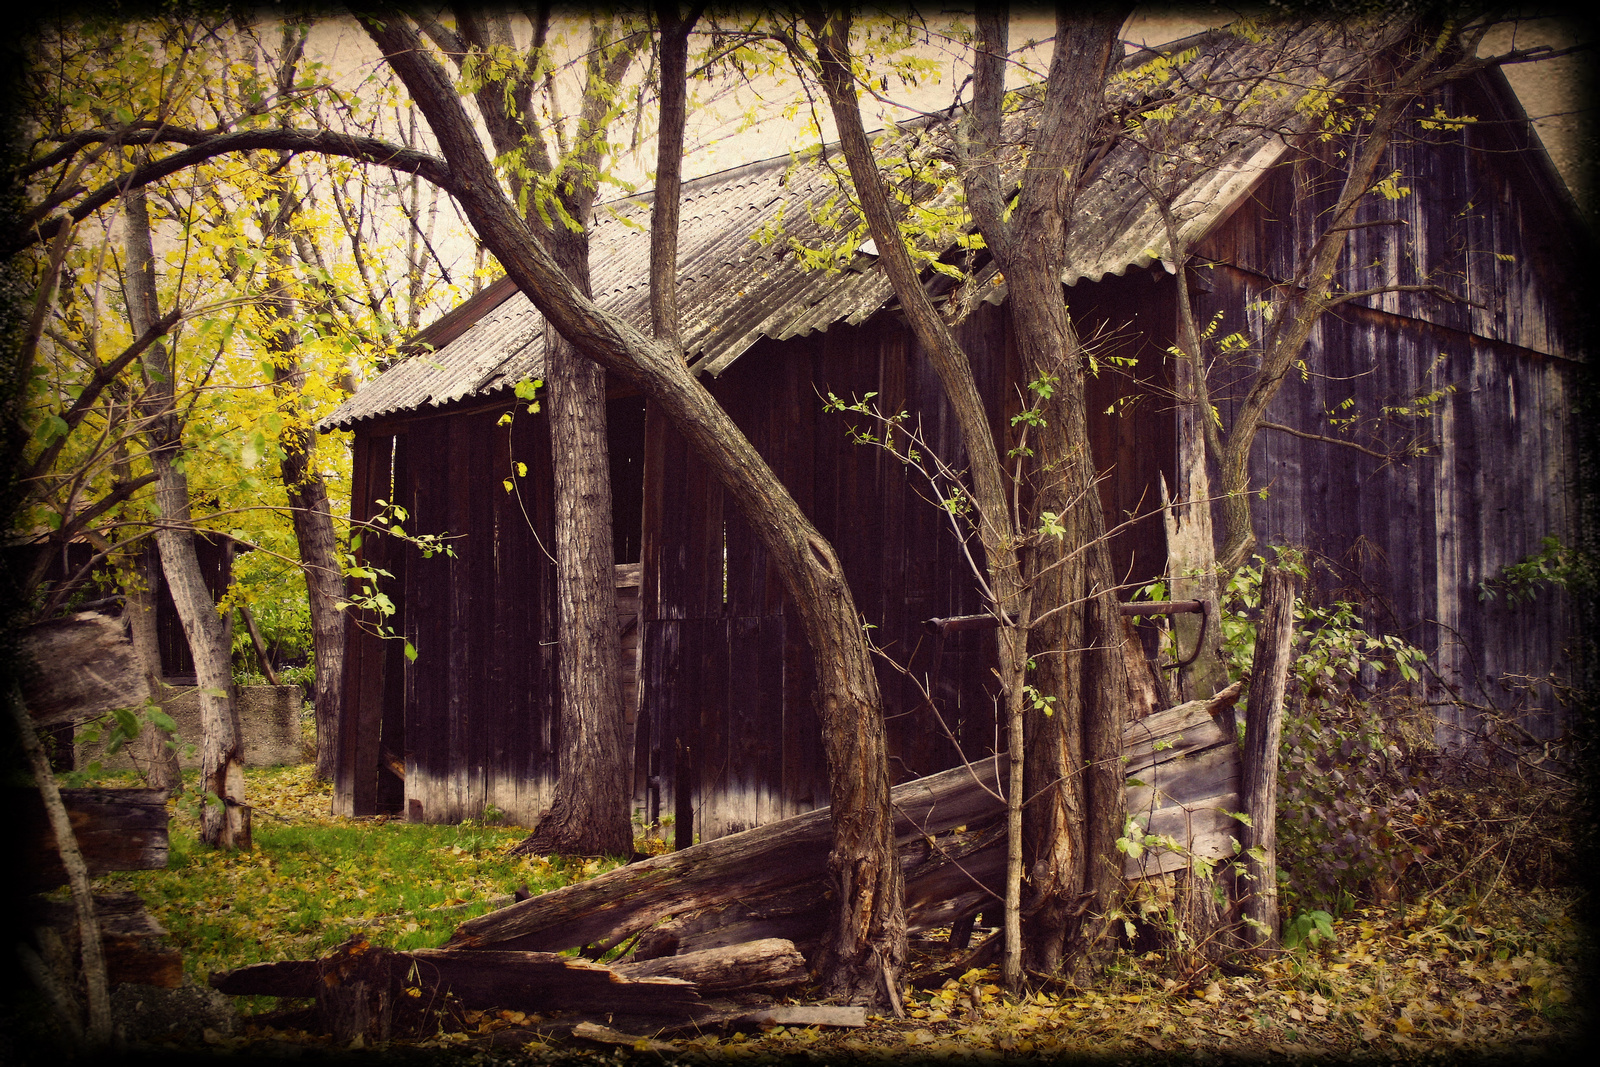 Nora6: Cabin in the woods